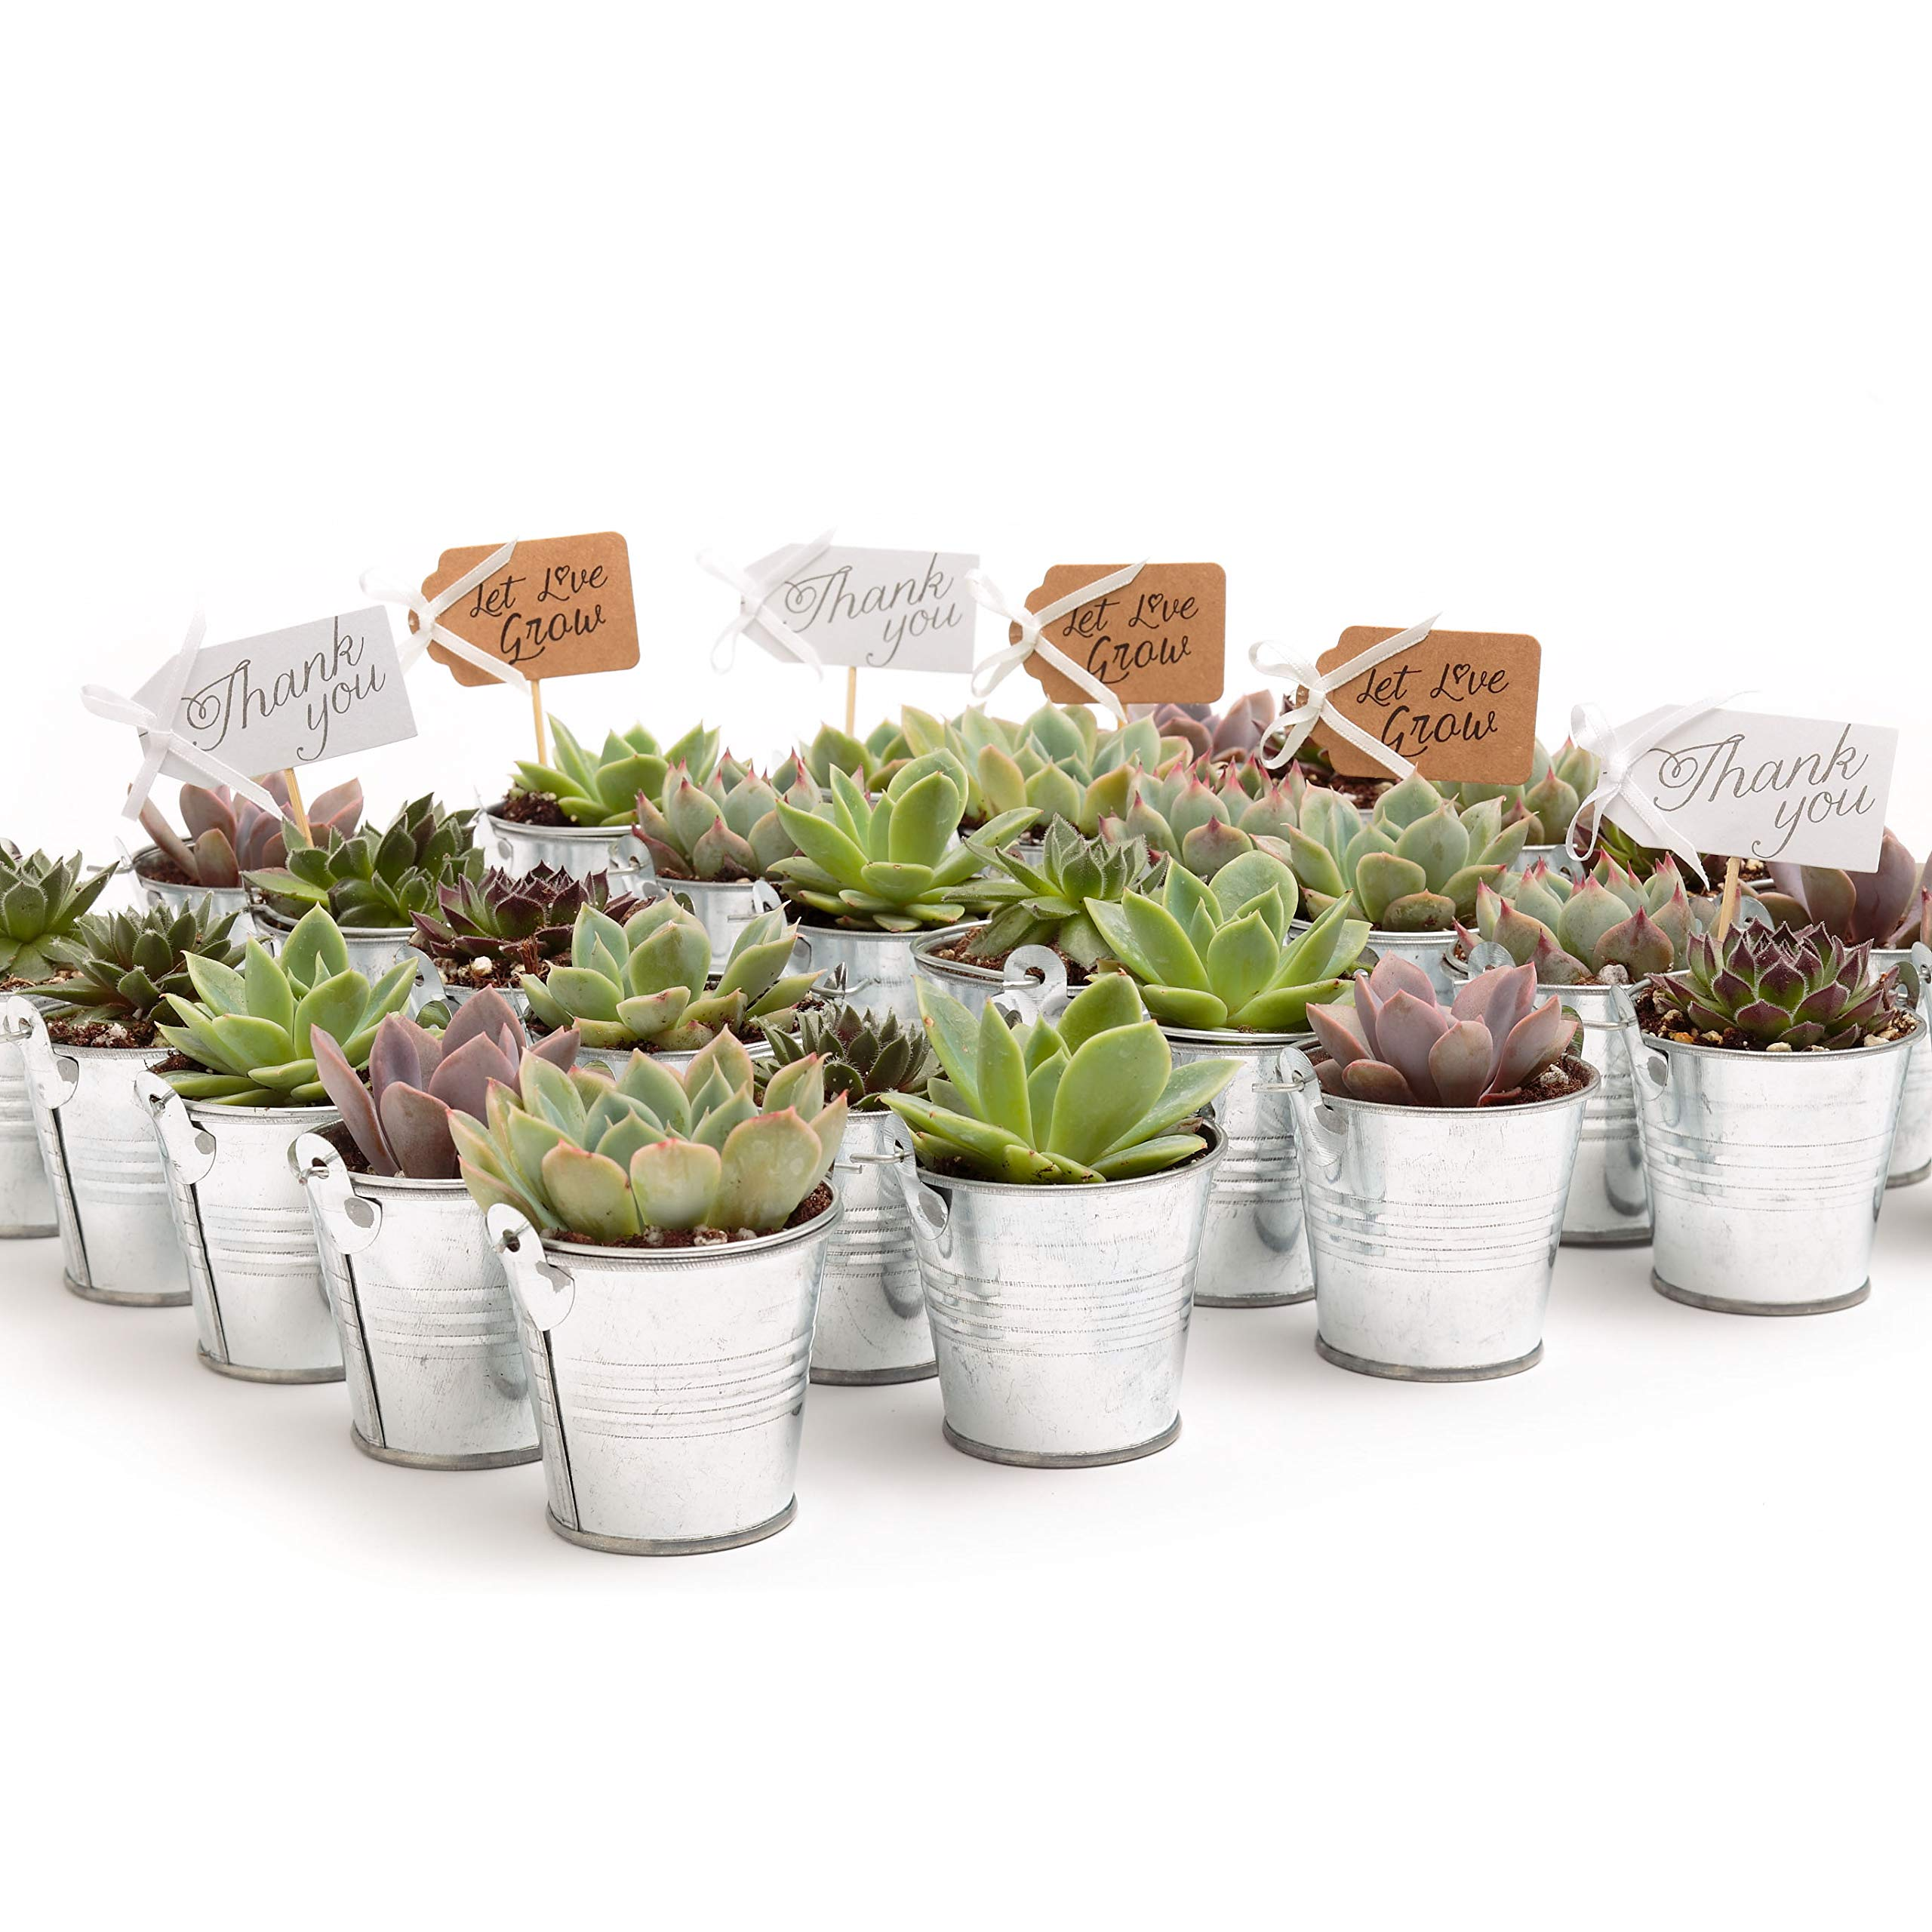 2 in. Wedding Event Rosette Succulents with Tin Metal Pails and Thank You Tags (30)